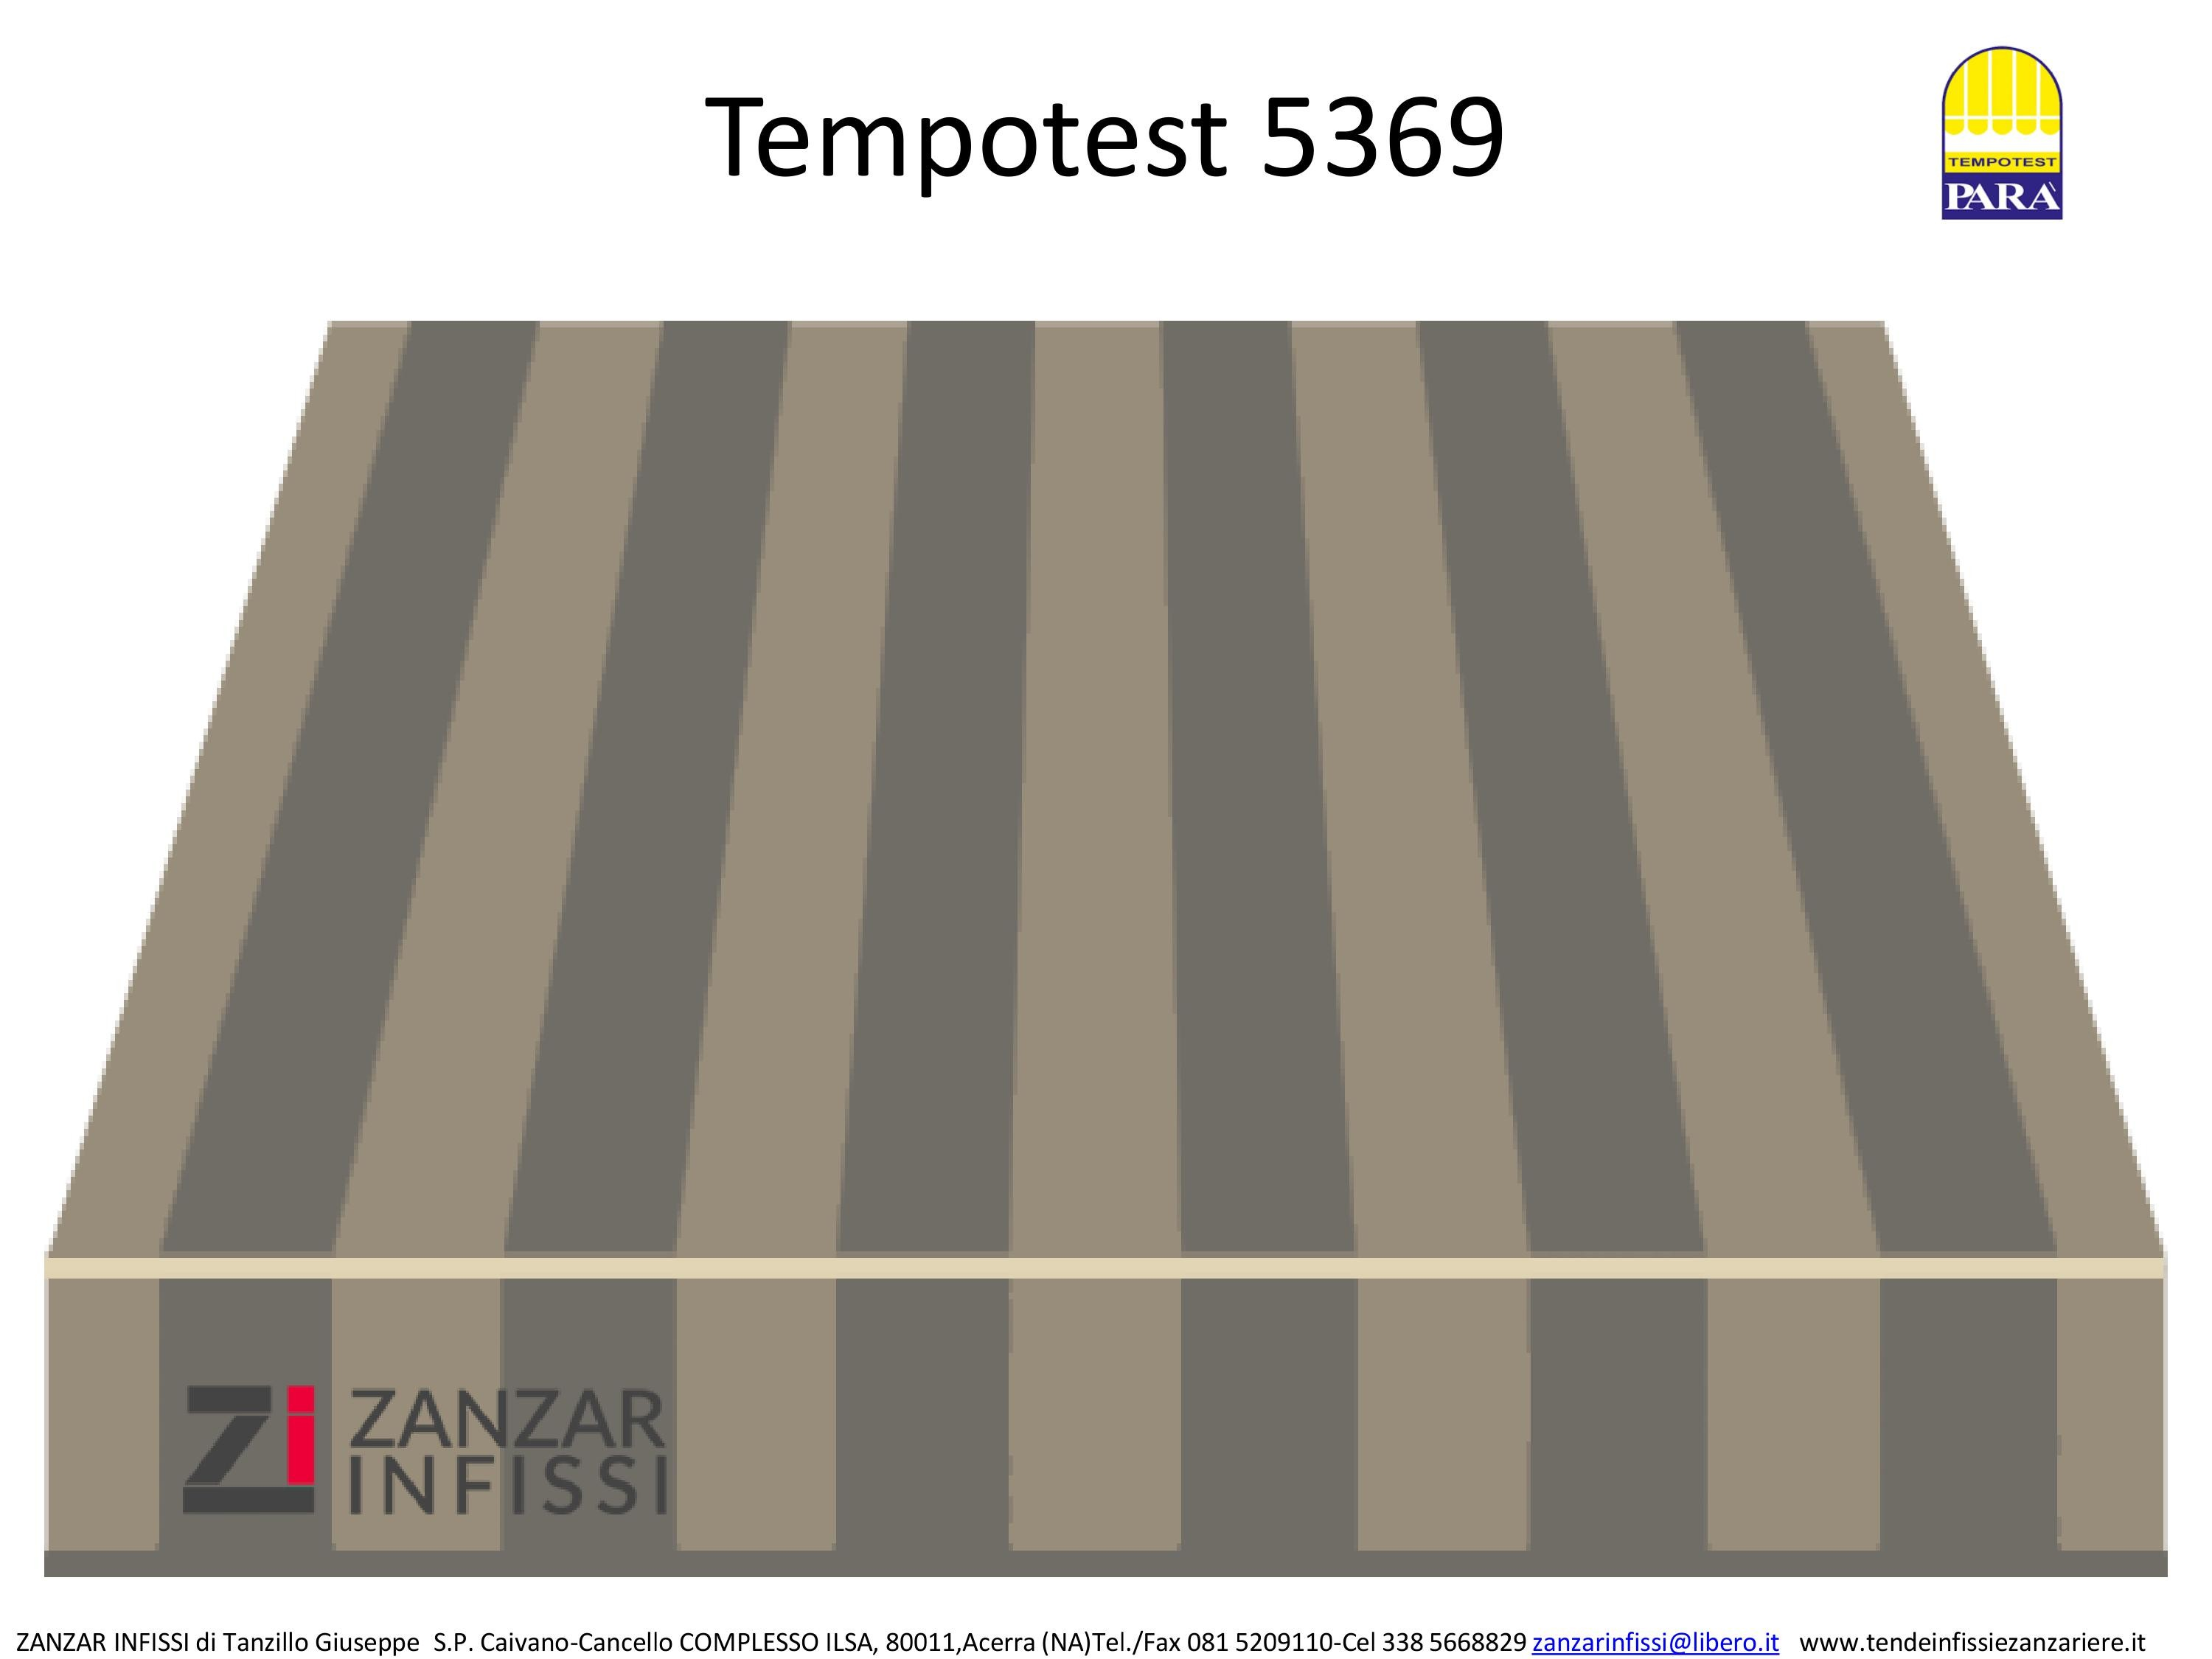 Tempotest 5369